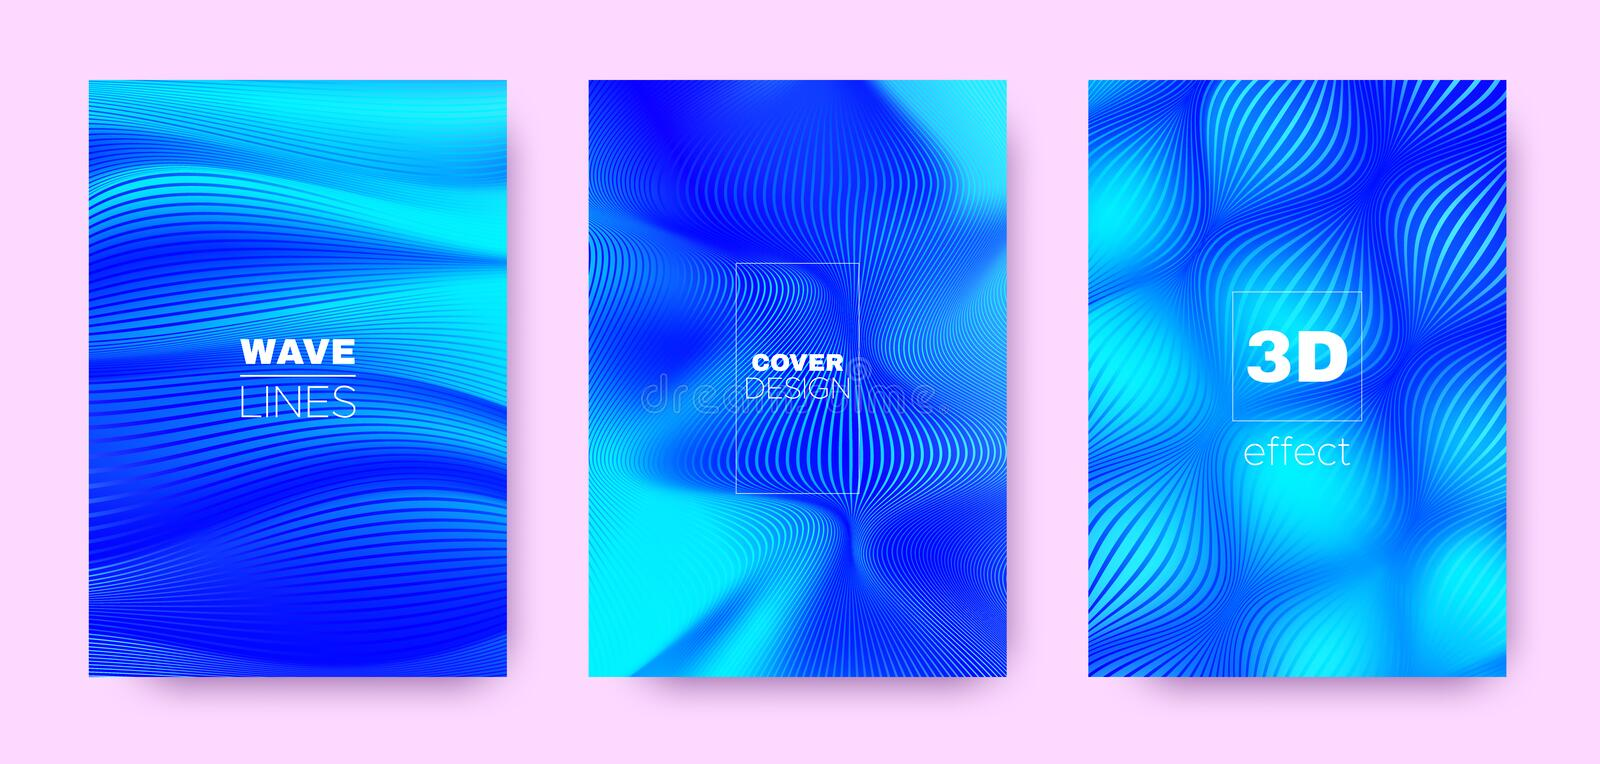 3d Lines Banner. Wave Flow Shape. Neon Abstract. Wallpaper. Gradient Striped Pattern. Gradient 3d Lines Poster. Wave Fluid Concept. Neon Abstract Background vector illustration